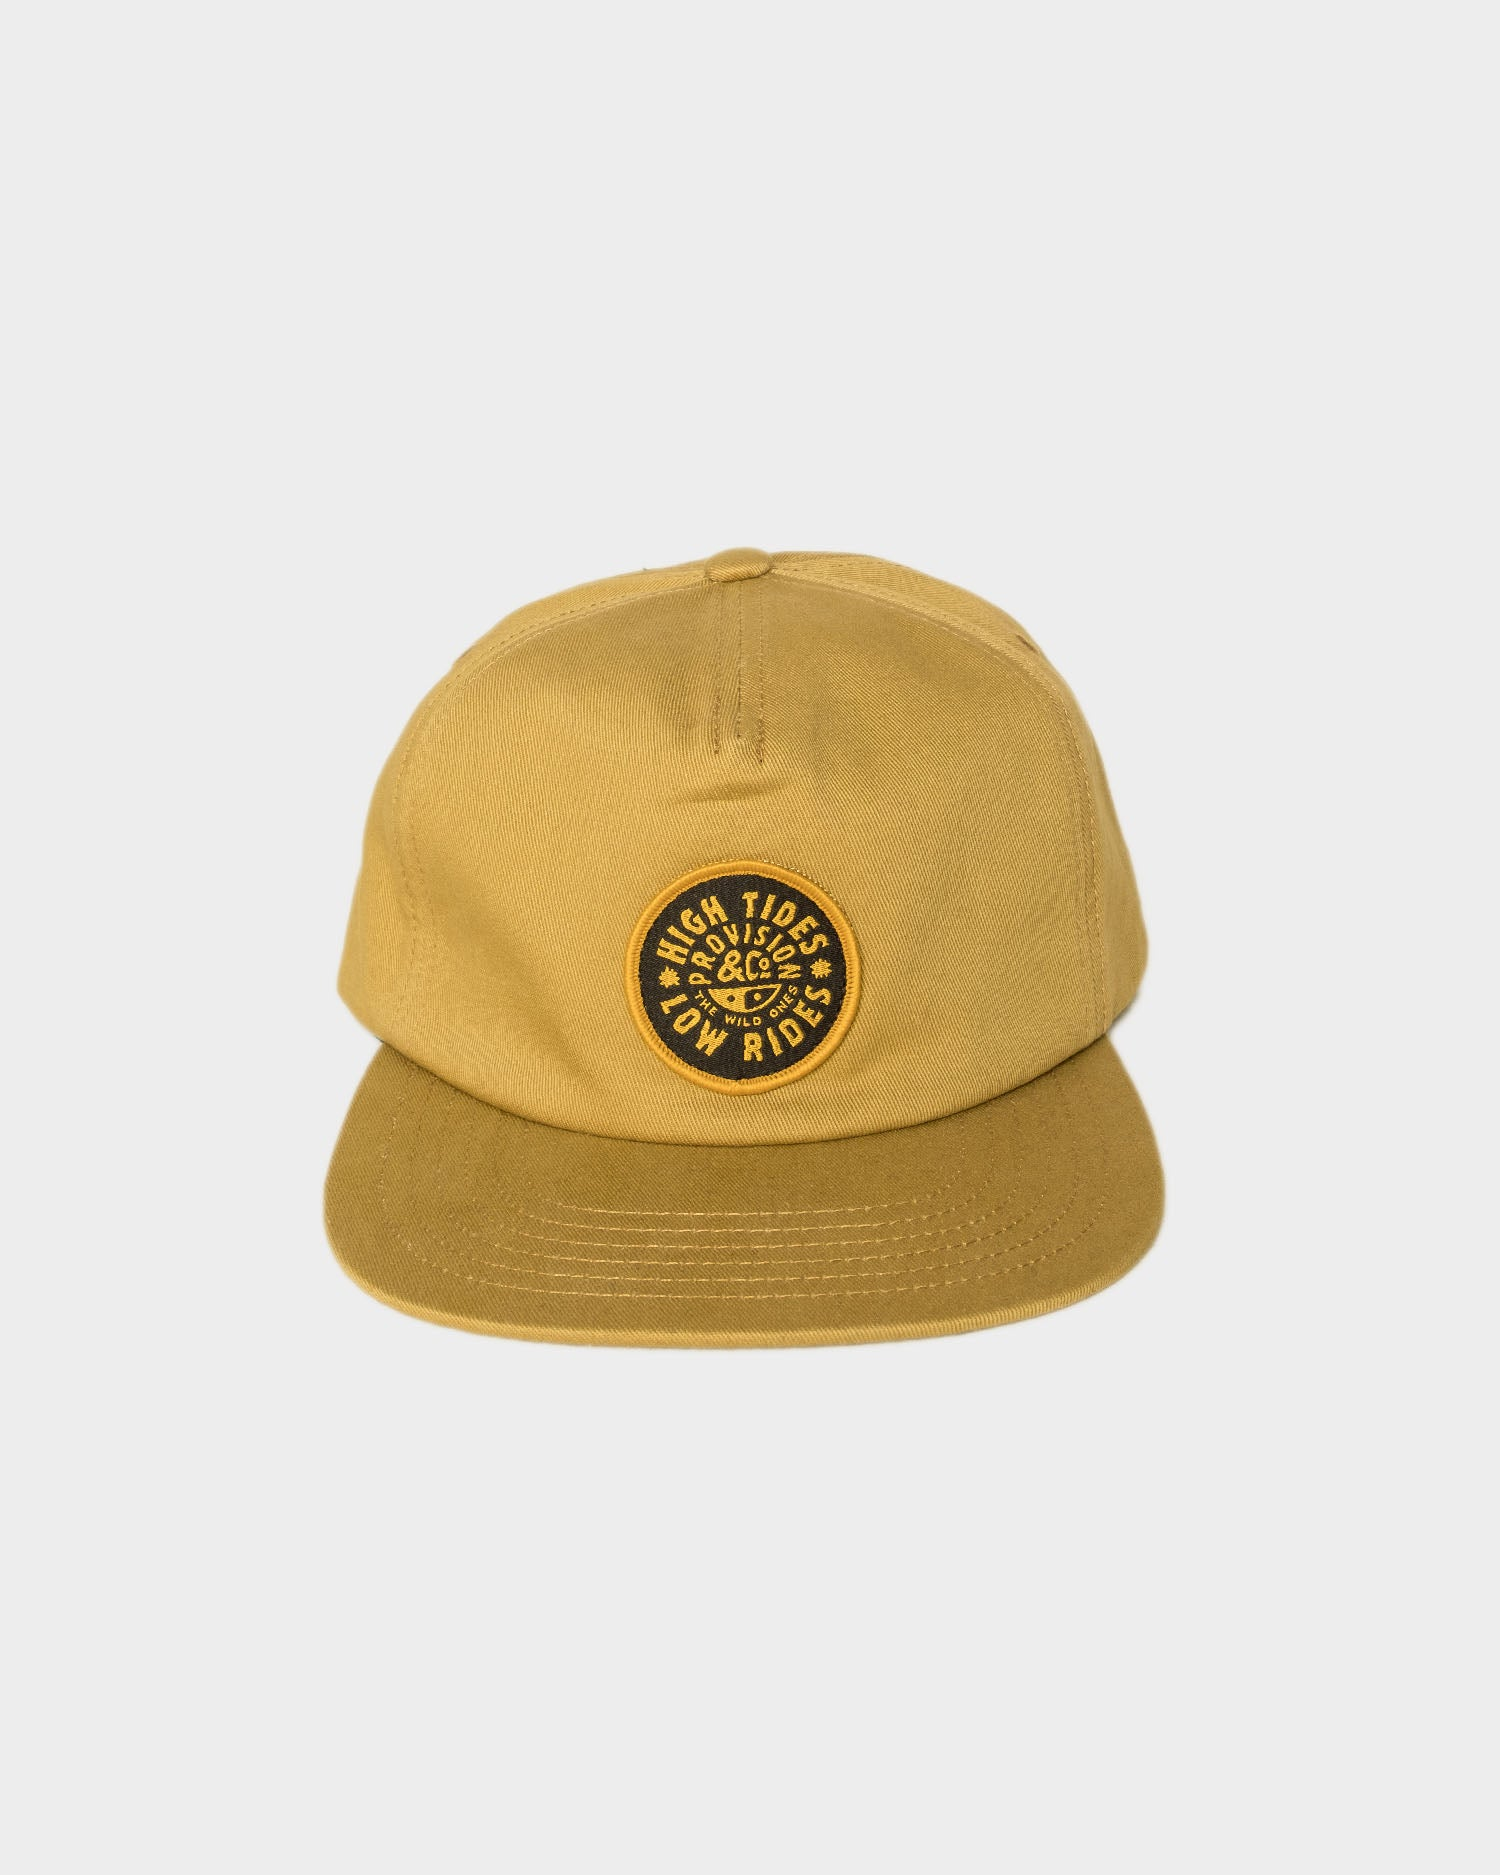 Sand High Tides 5 Panel Cap